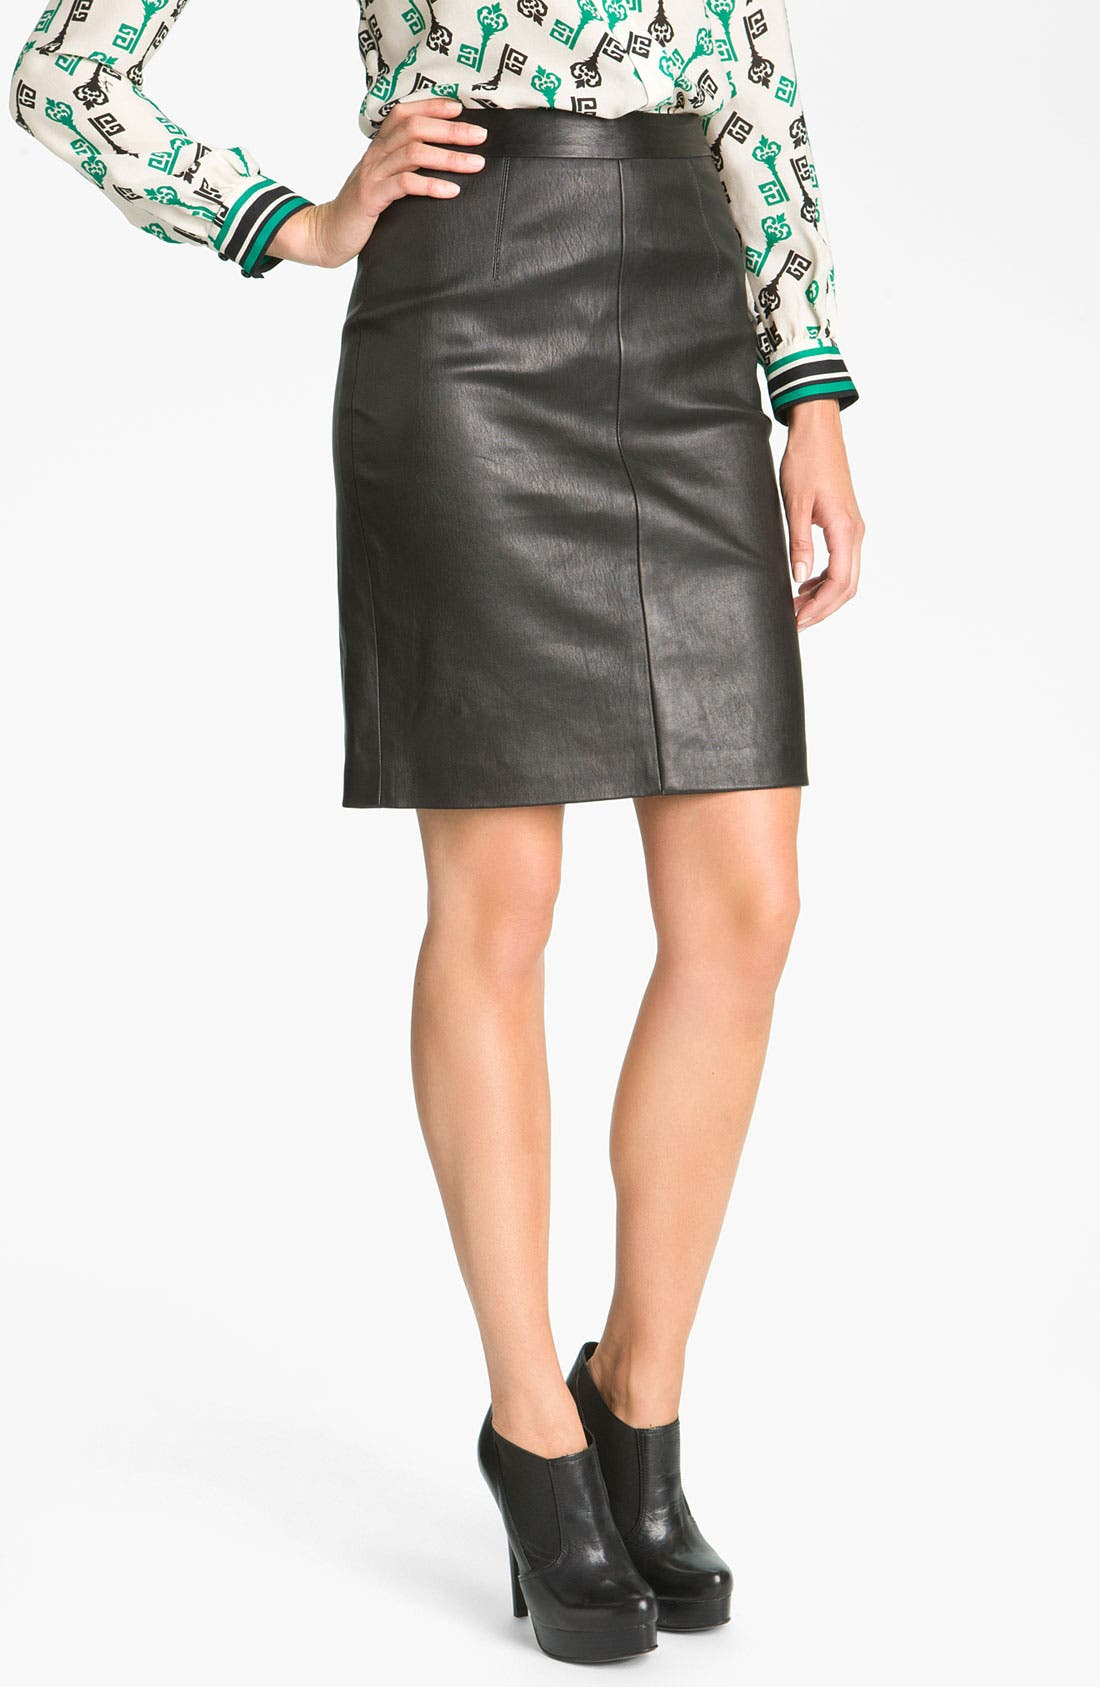 Alternate Image 1 Selected - Milly Seamed Pencil Skirt